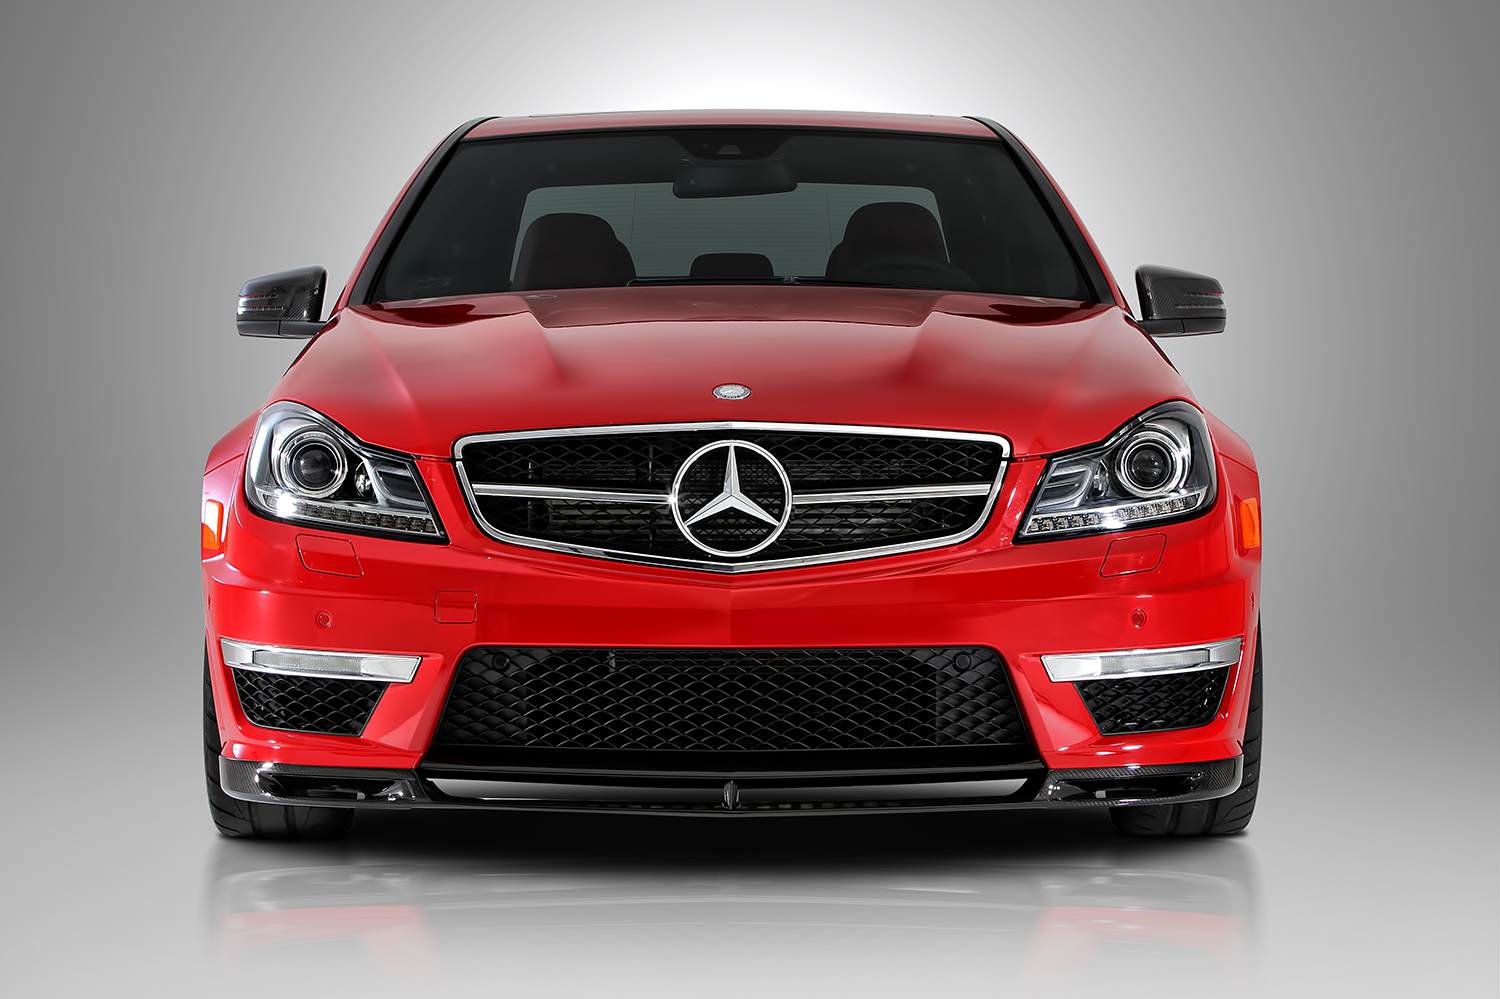 2012 mercedes benz c63 amg sedan by vorsteiner gtspirit for C63 mercedes benz